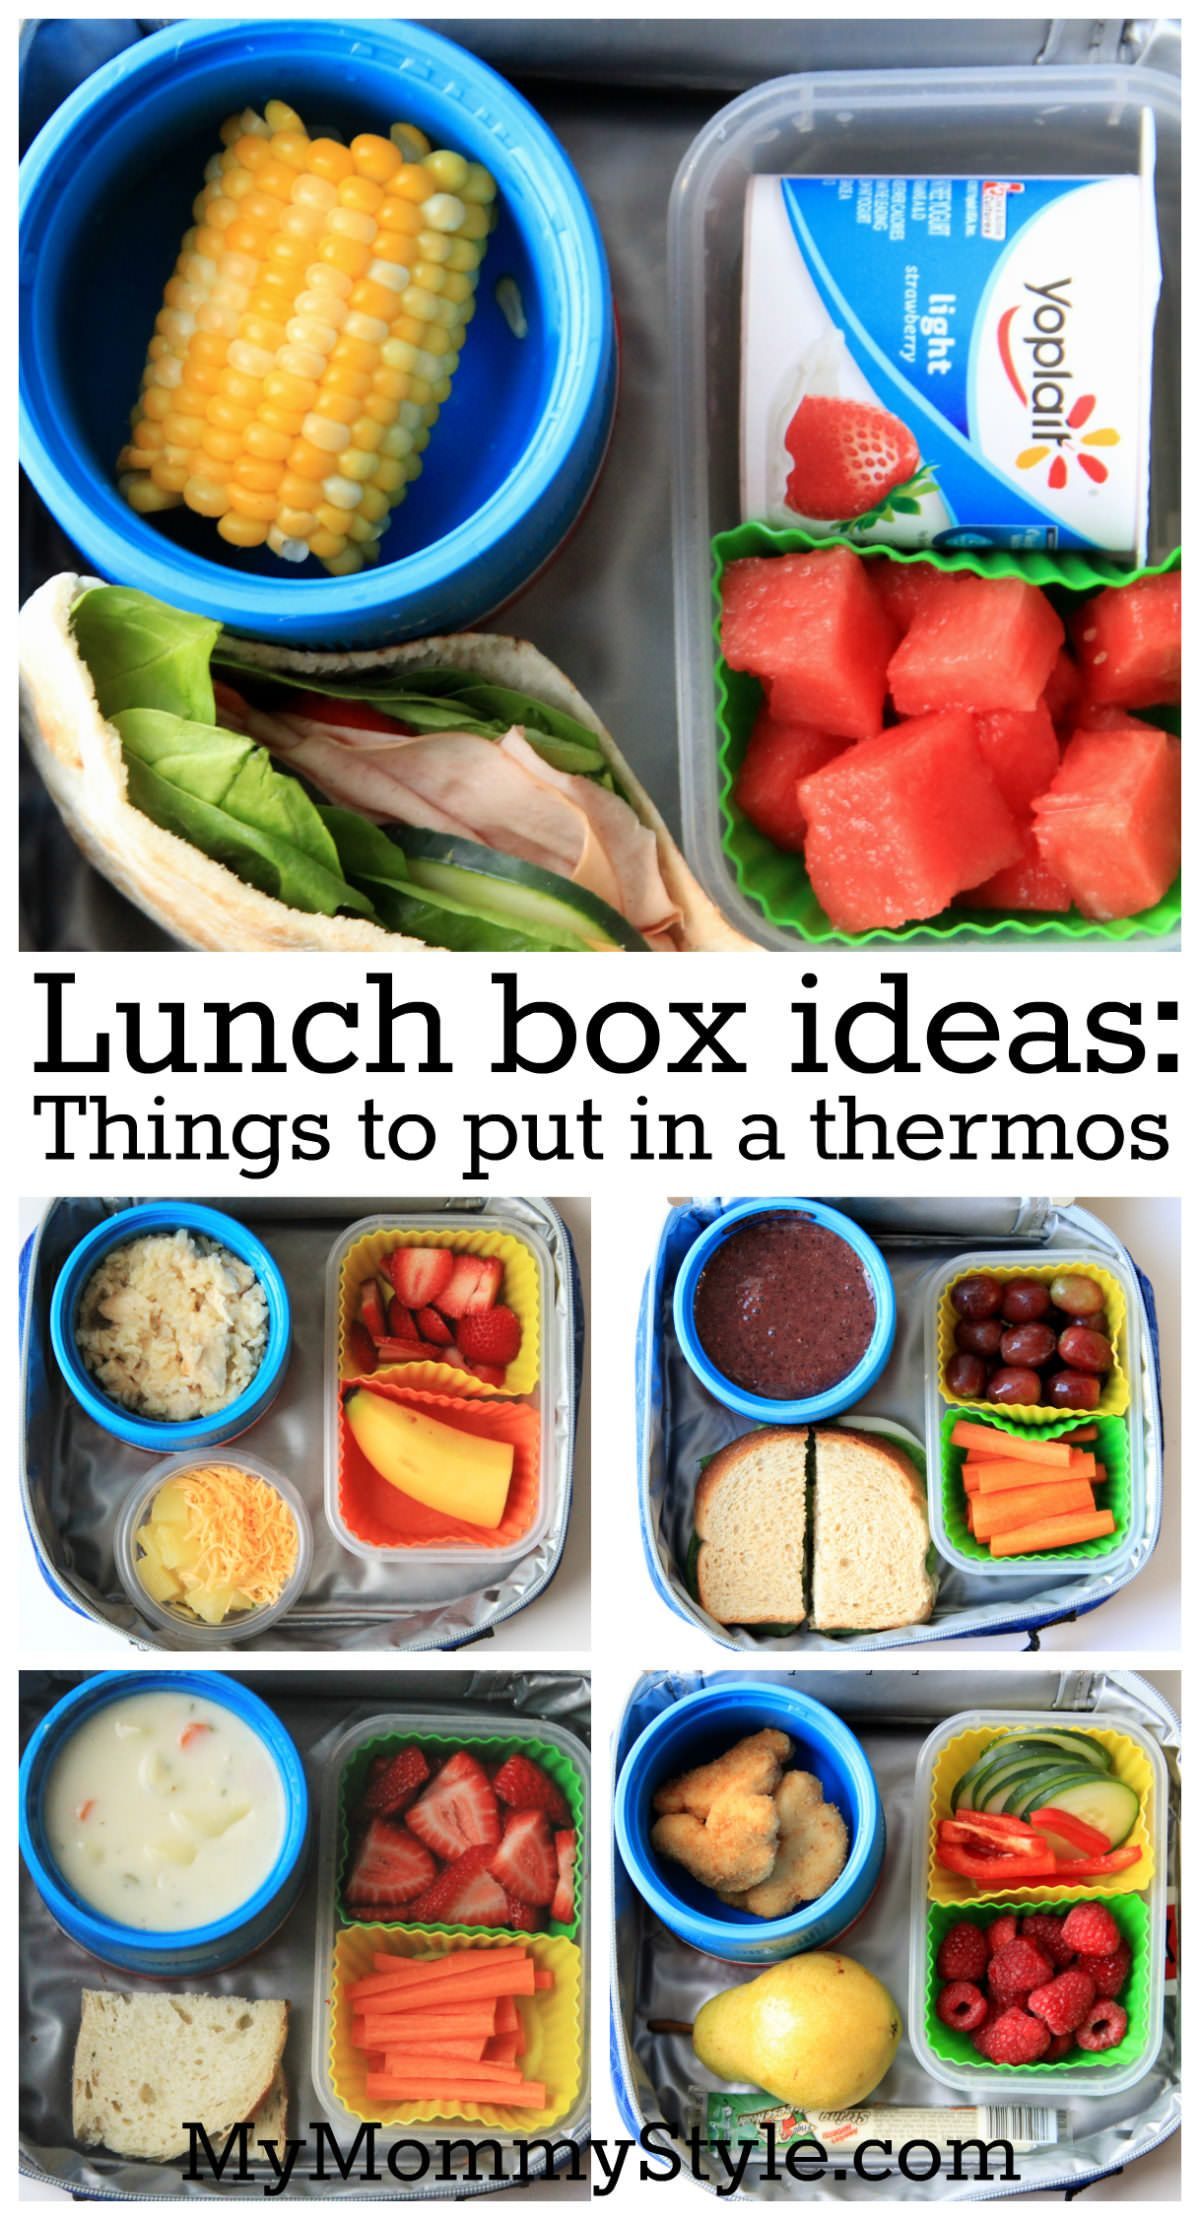 Lunch Box Ideas: Things to put in a thermos images